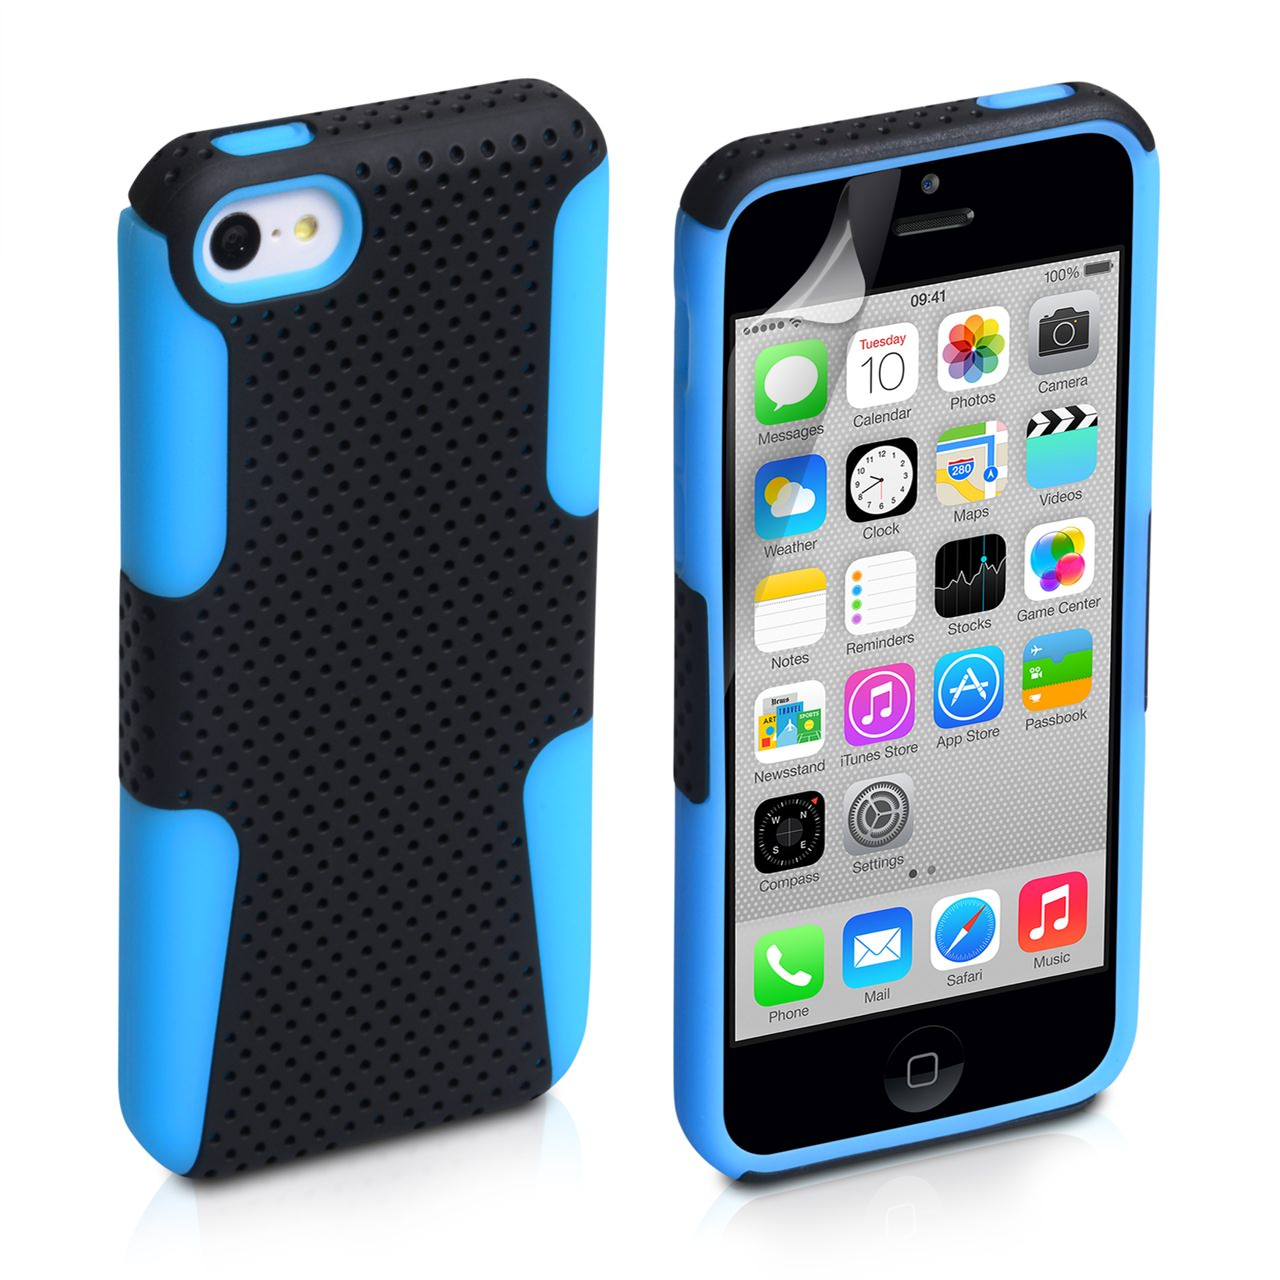 YouSave Accessories iPhone 5C Mesh Combo Case - Blue